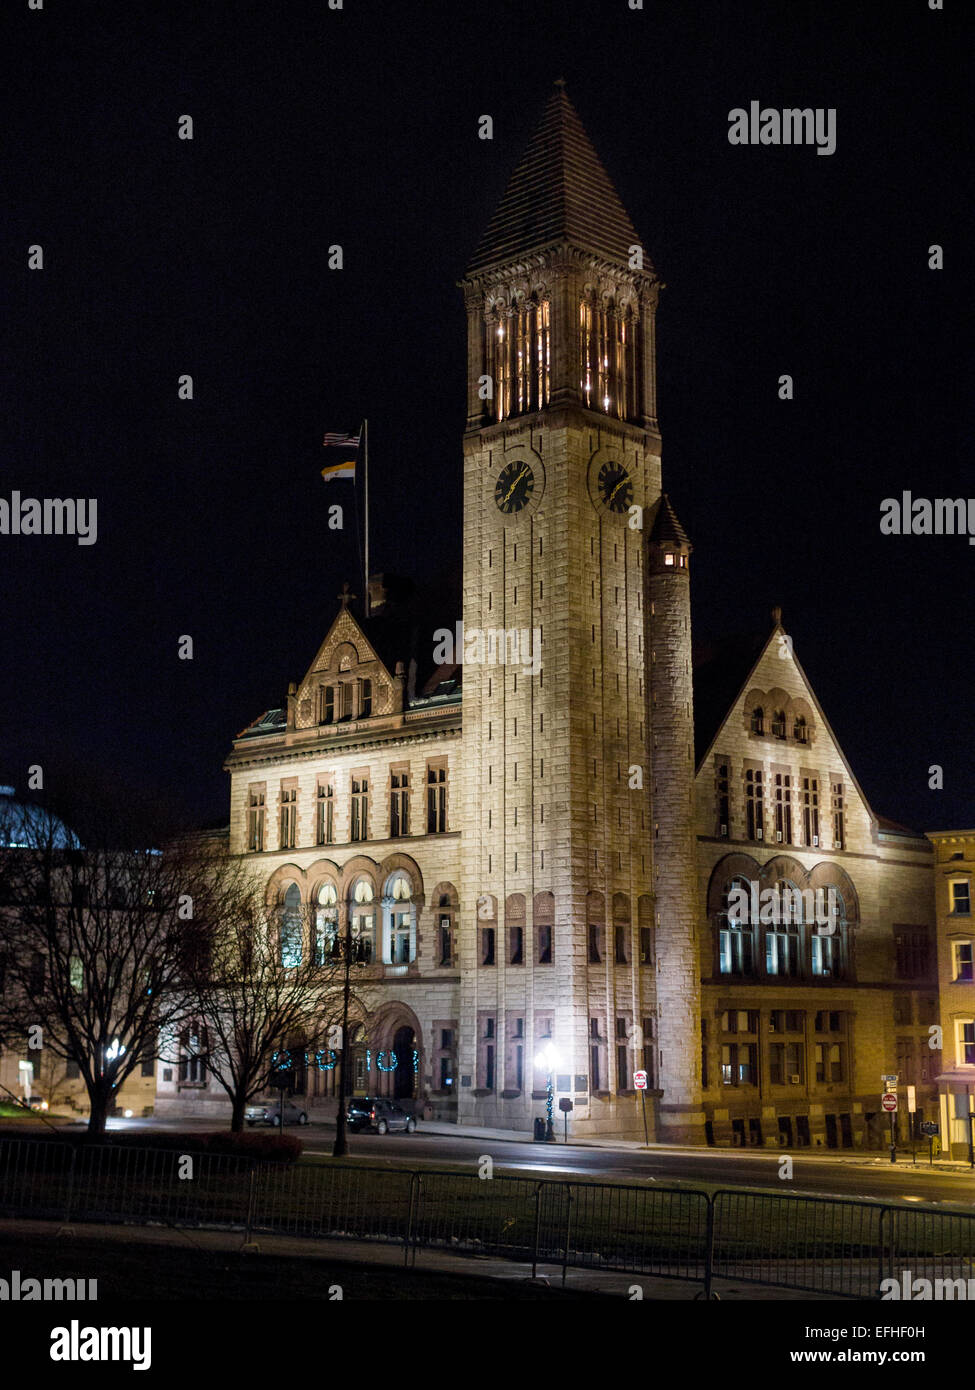 Albany City Hall at night. A floodlit City Hall, its high Venetian-style tower extends into the dark sky. - Stock Image